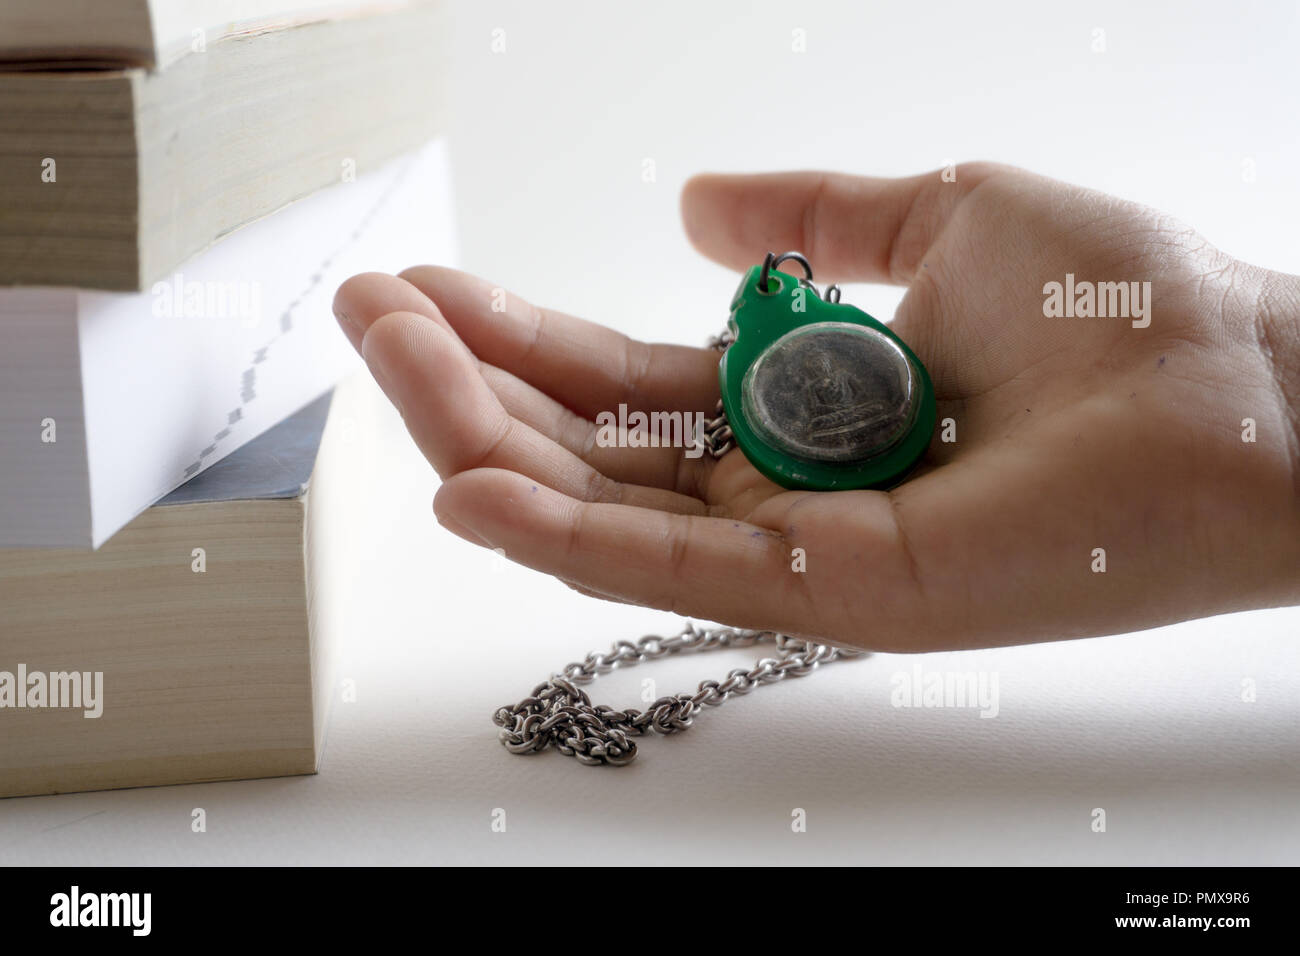 Pass on the concern by giving the sacred things protection - Stock Image